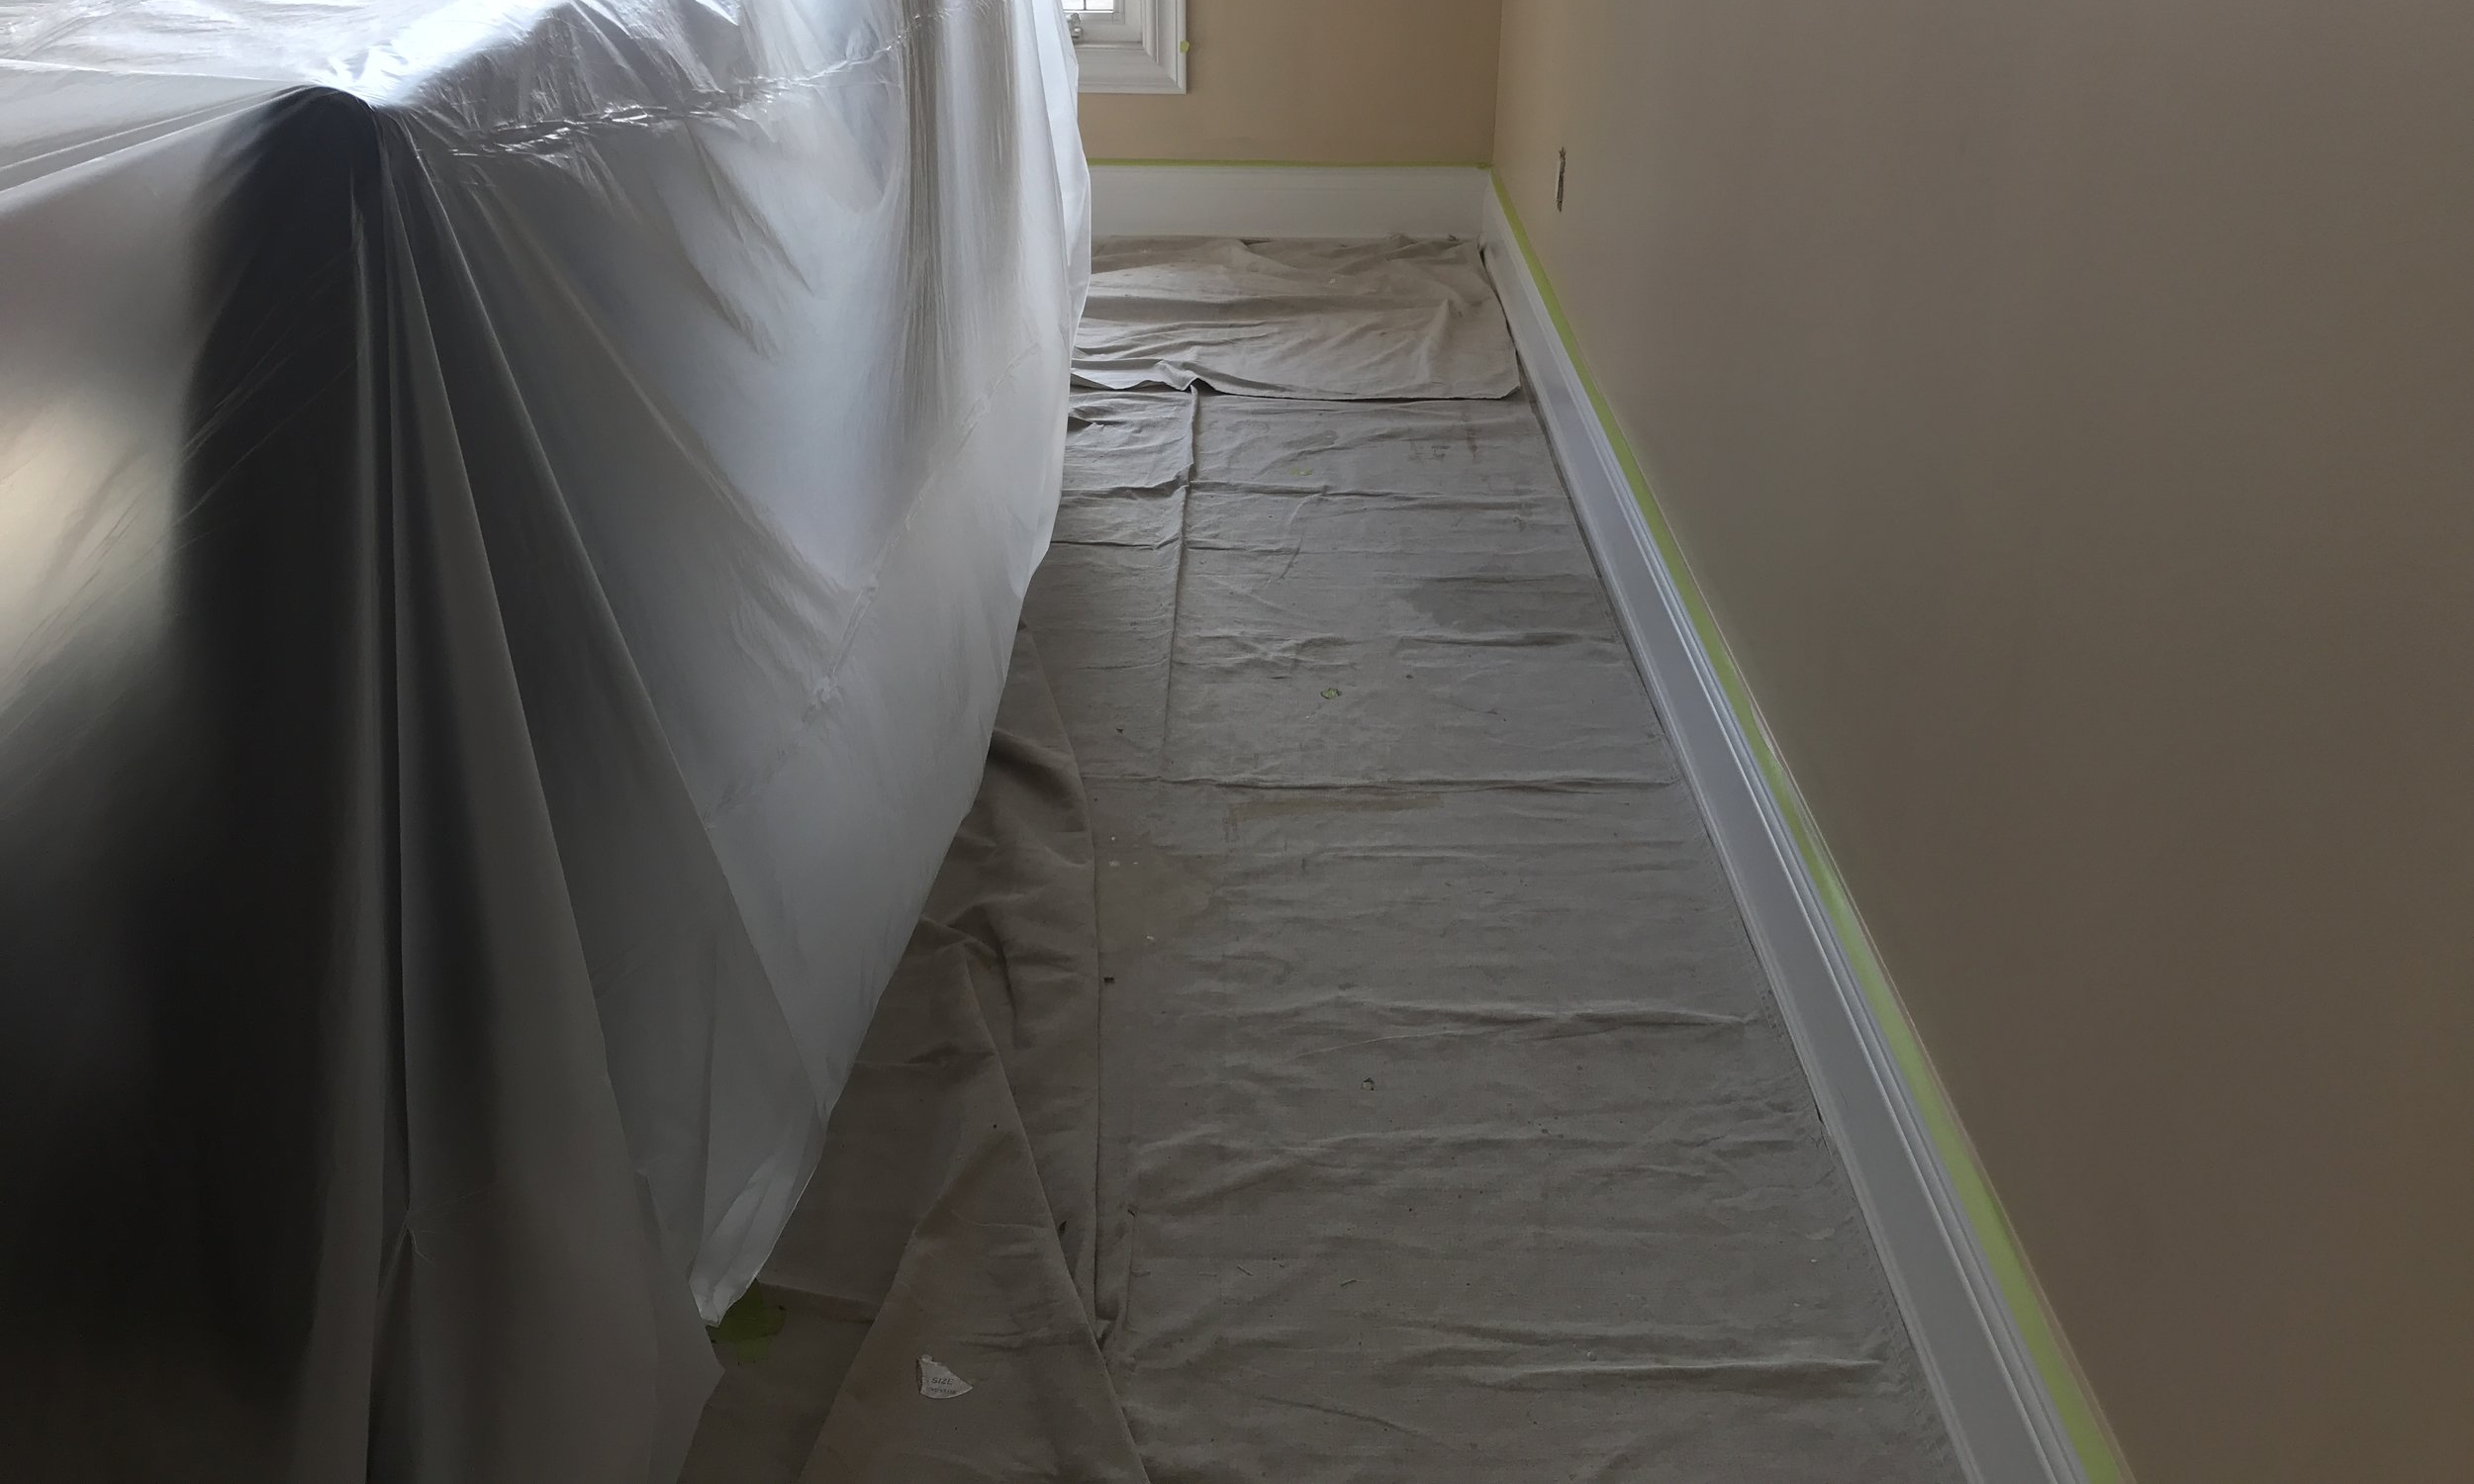 Drop Sheets For Floors - We cover floors with cloth drop sheets to protect from spills and roller overspray.